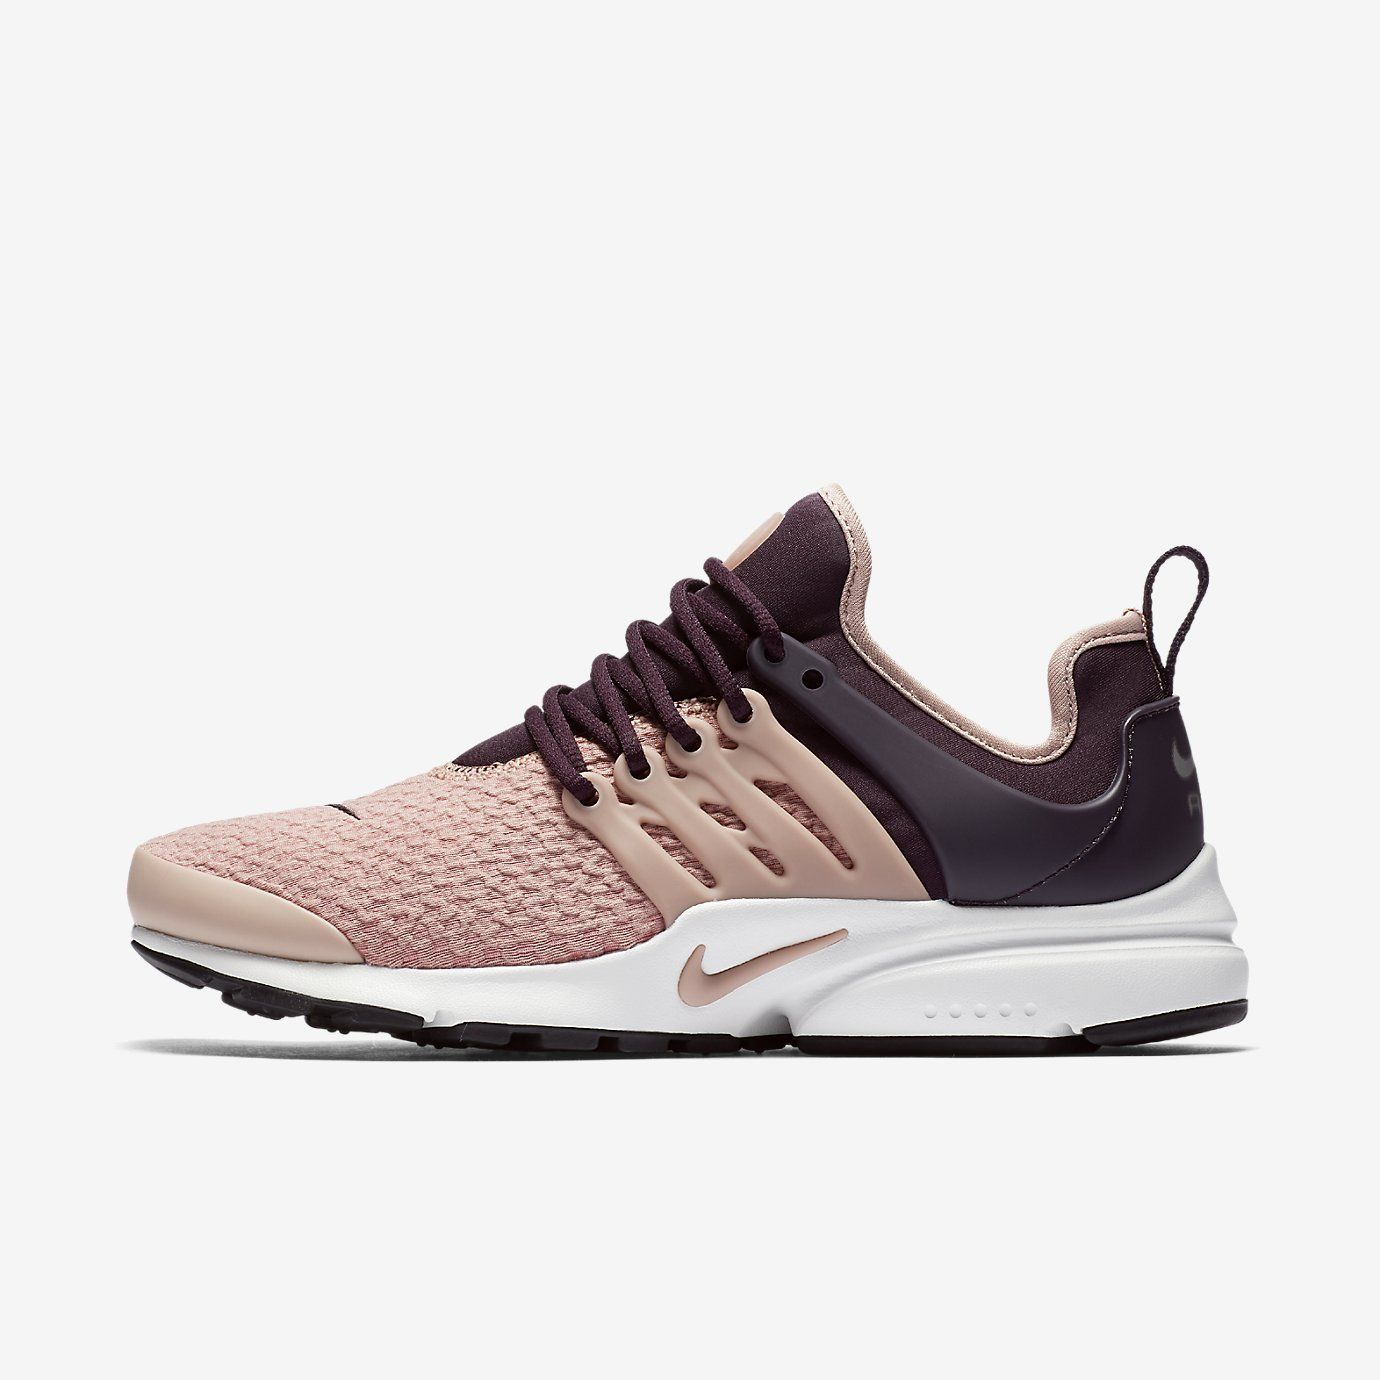 buy popular f1fd9 74f23 Nike Air Presto- port winesummit whiteblackparticle pink